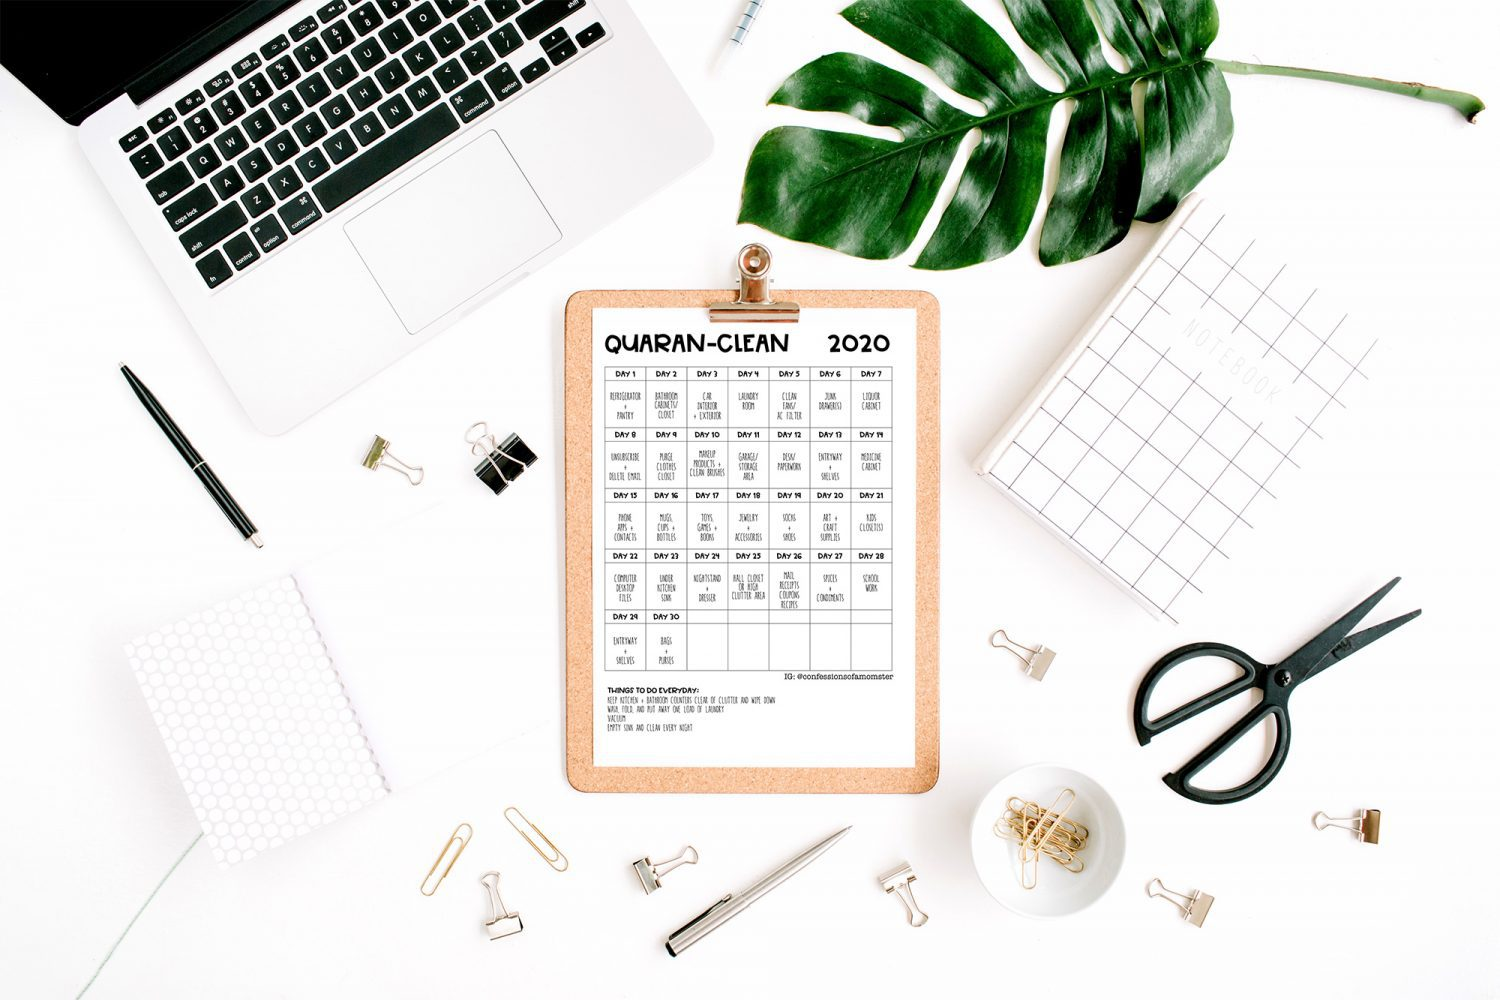 quarantine cleaning schedule on a desk